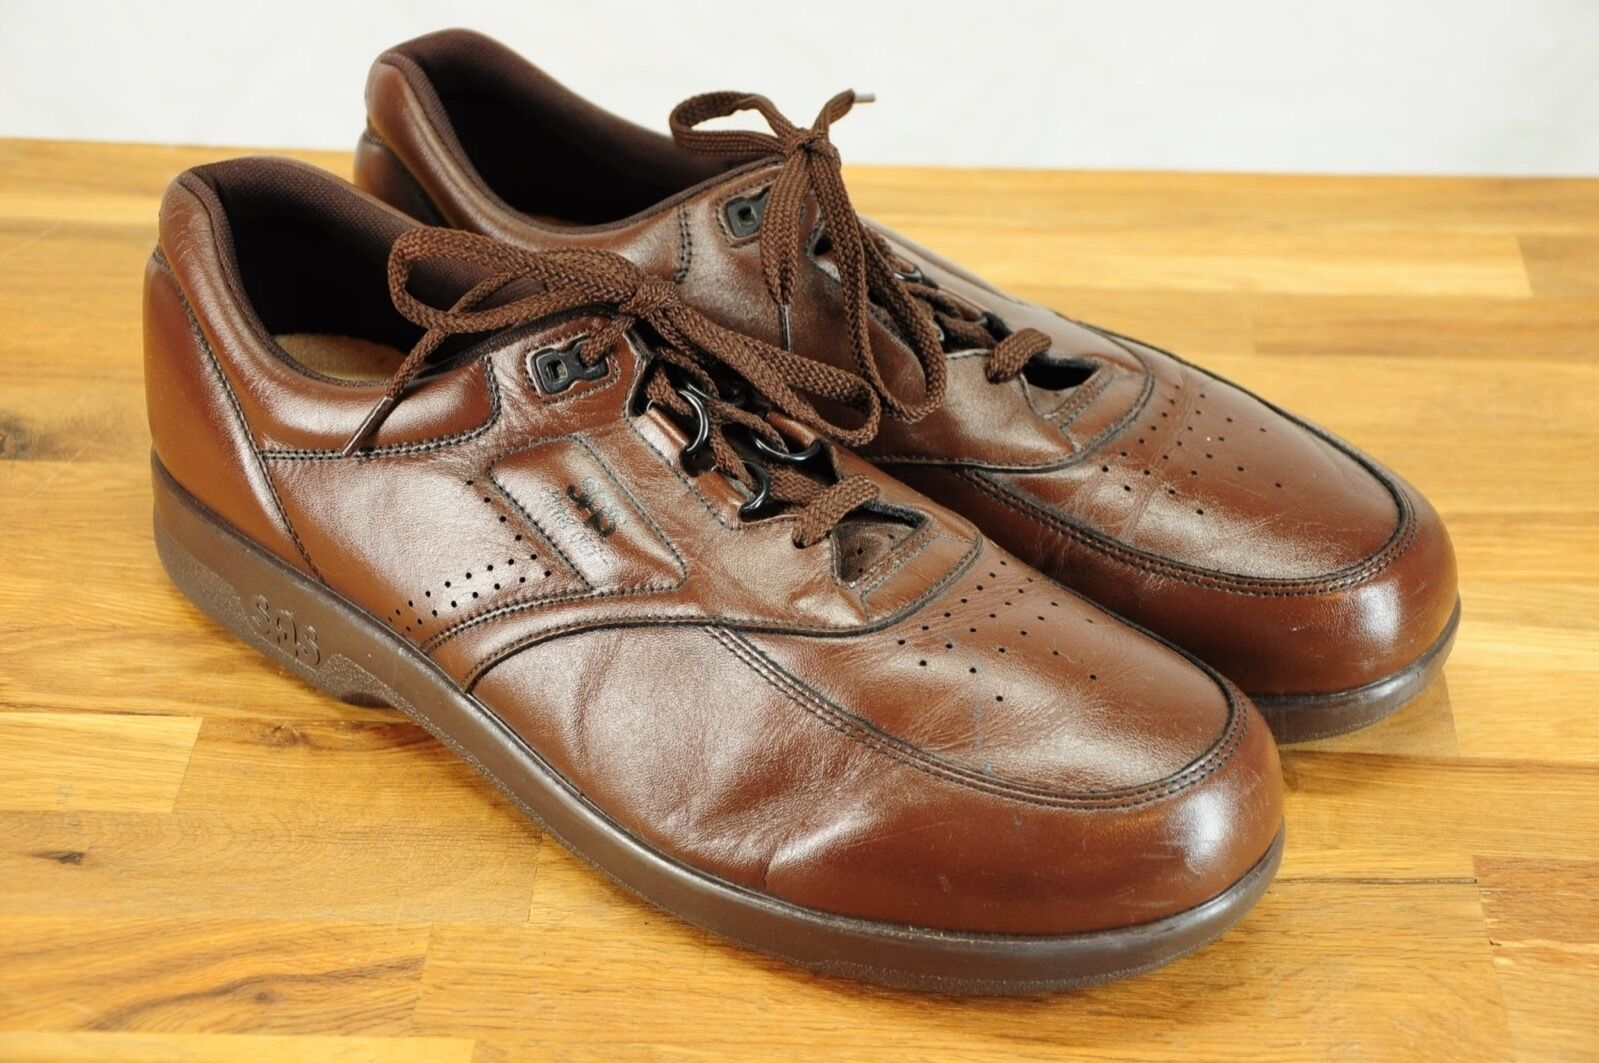 Scarpe casual da uomo  NEW SAS Time Out Tripad Comfort Diabetic Approved Brown Leather Walking Shoe 14S